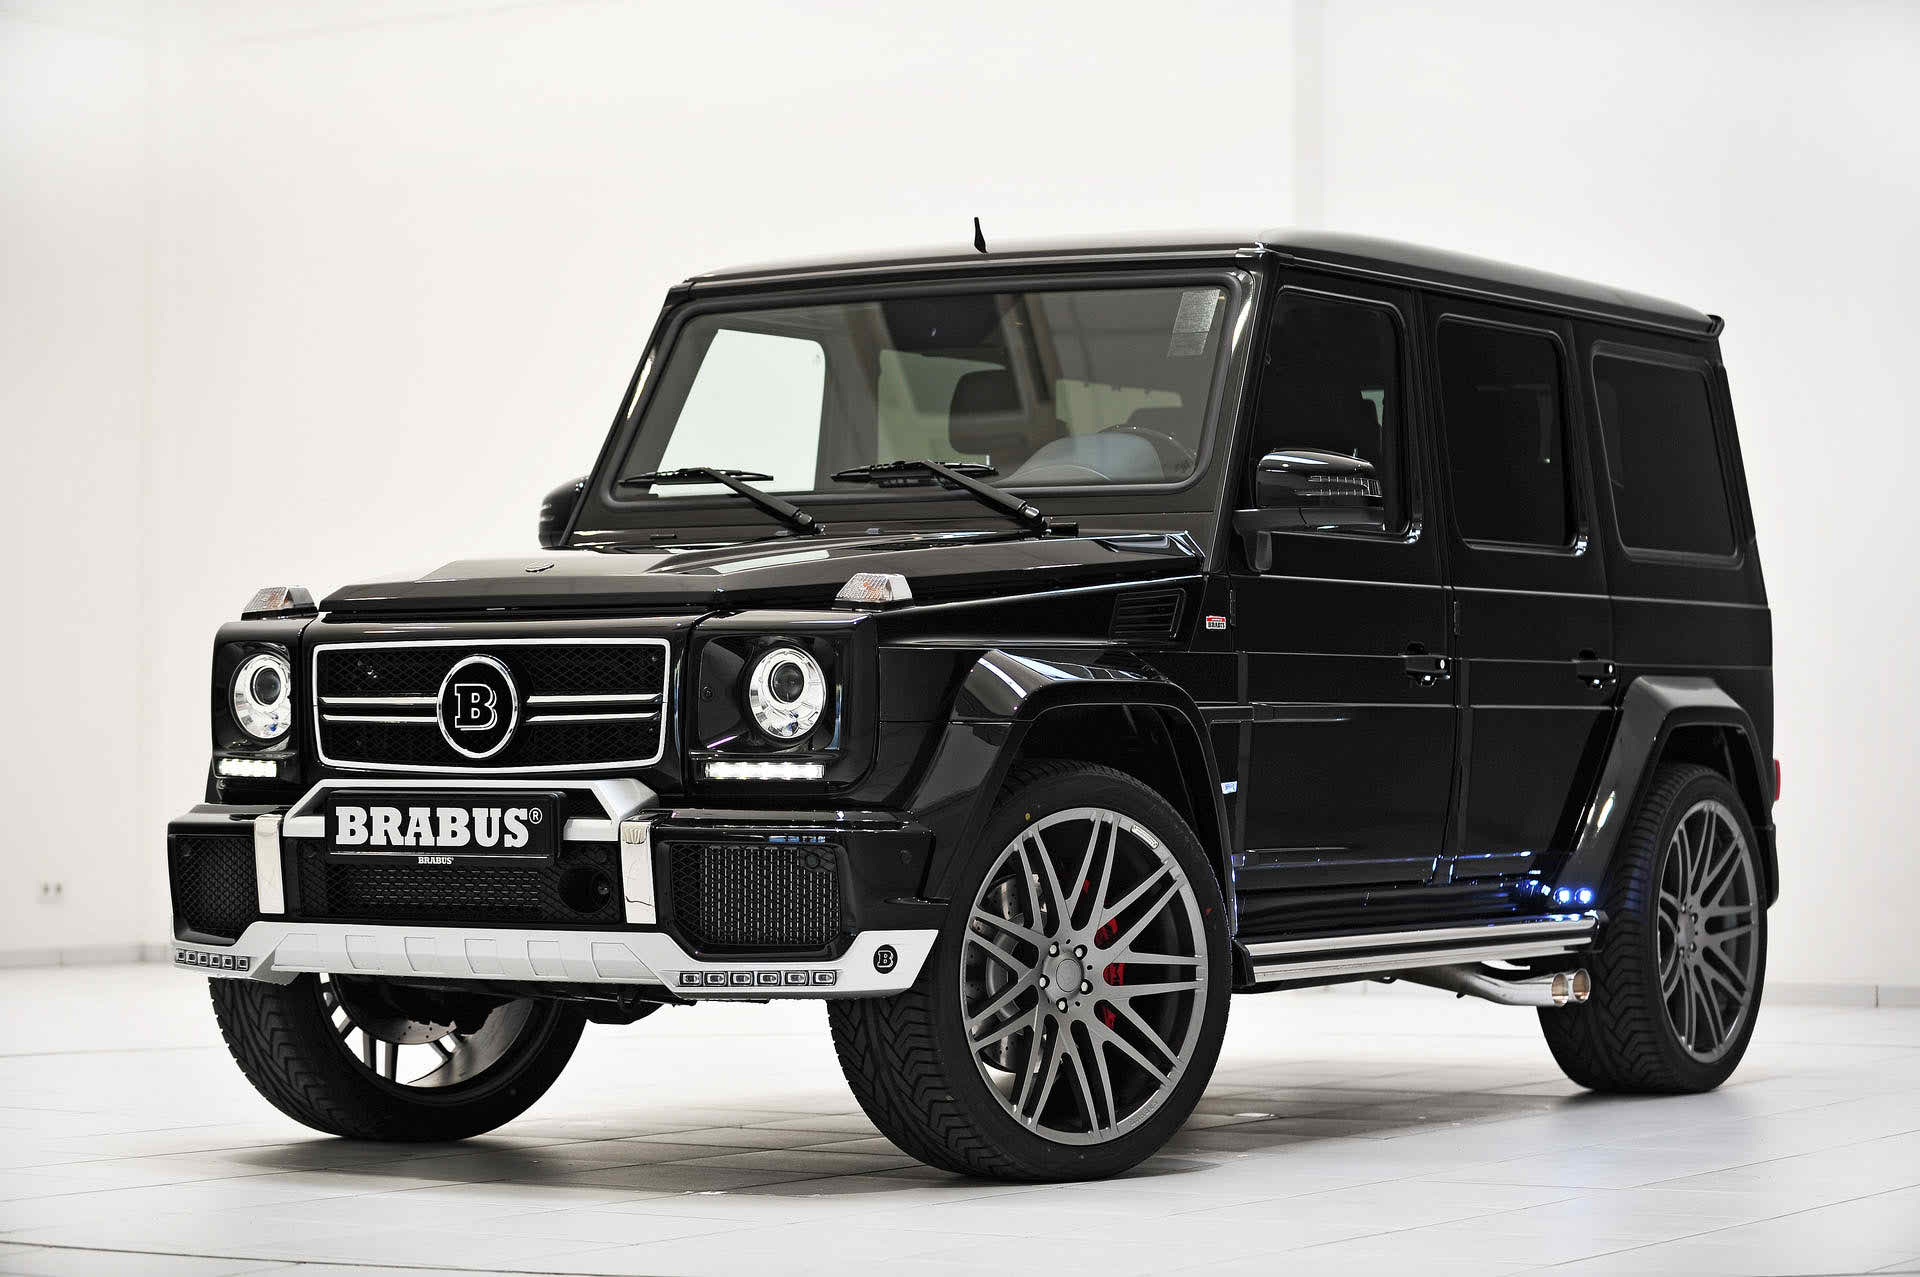 brabus g63 g65 amg widestar conversion kit gwagenparts. Black Bedroom Furniture Sets. Home Design Ideas